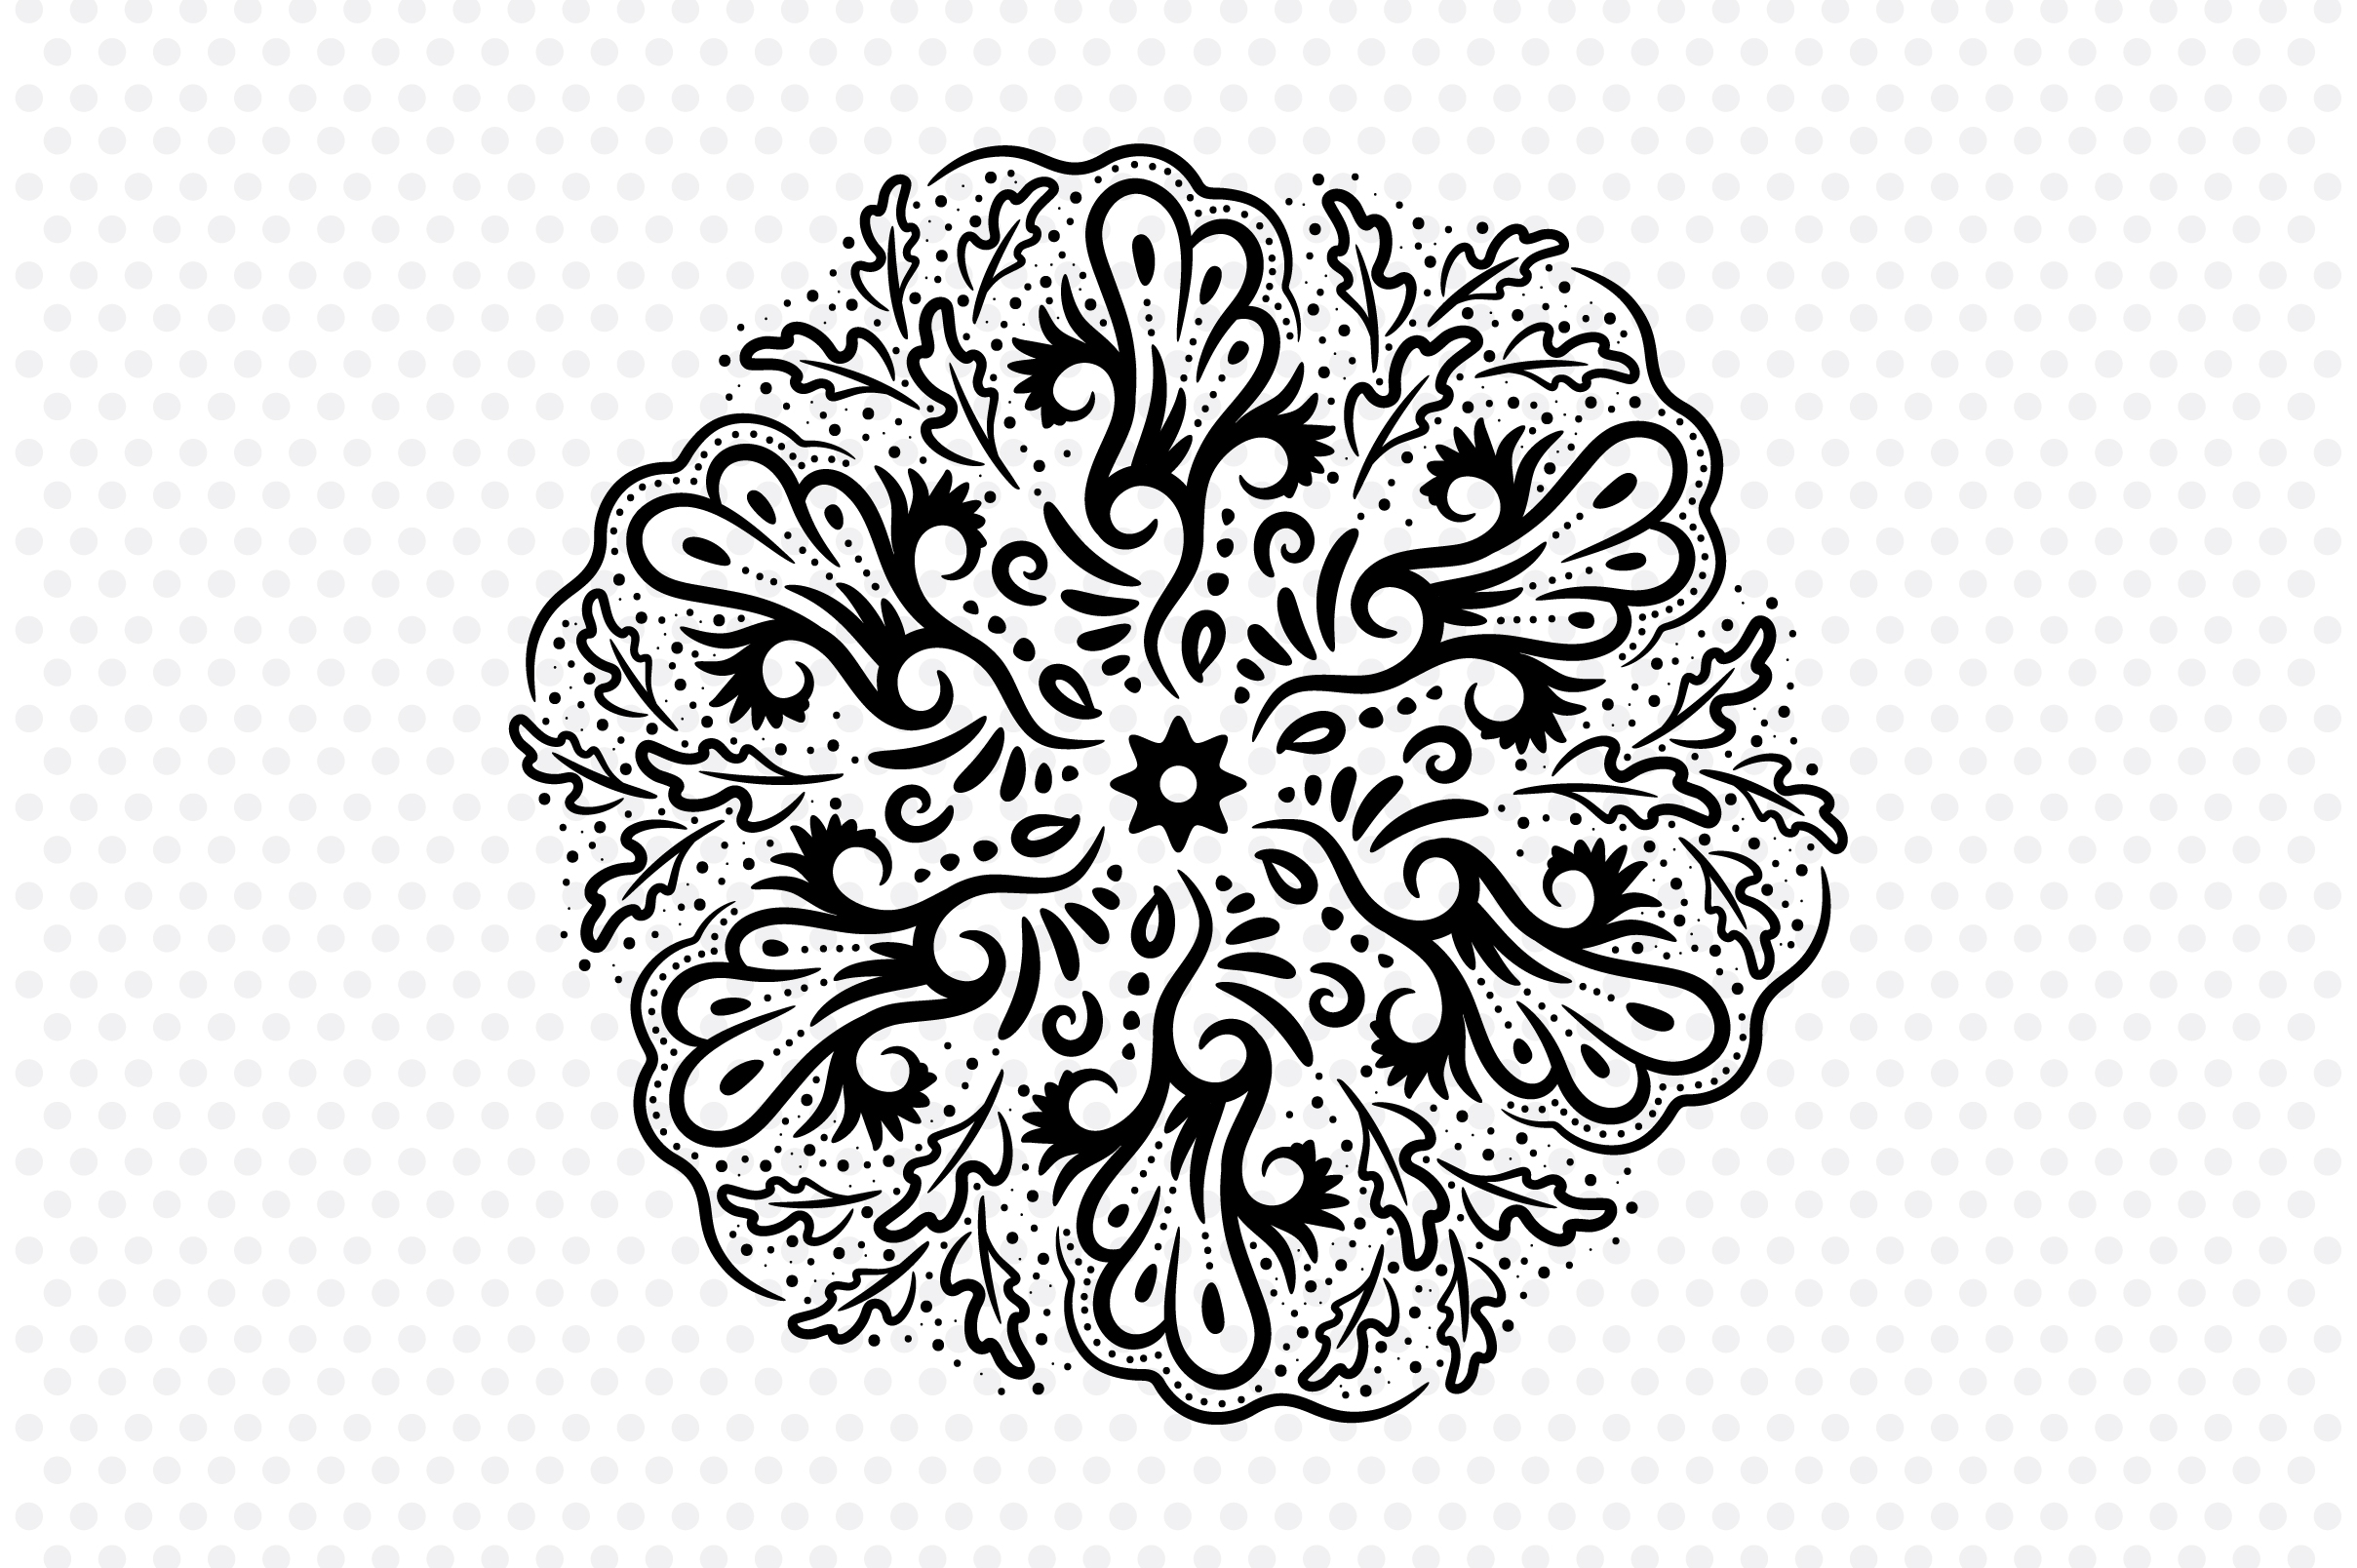 Download Free Batik Mandala Graphic By Izacuite Creative Fabrica for Cricut Explore, Silhouette and other cutting machines.